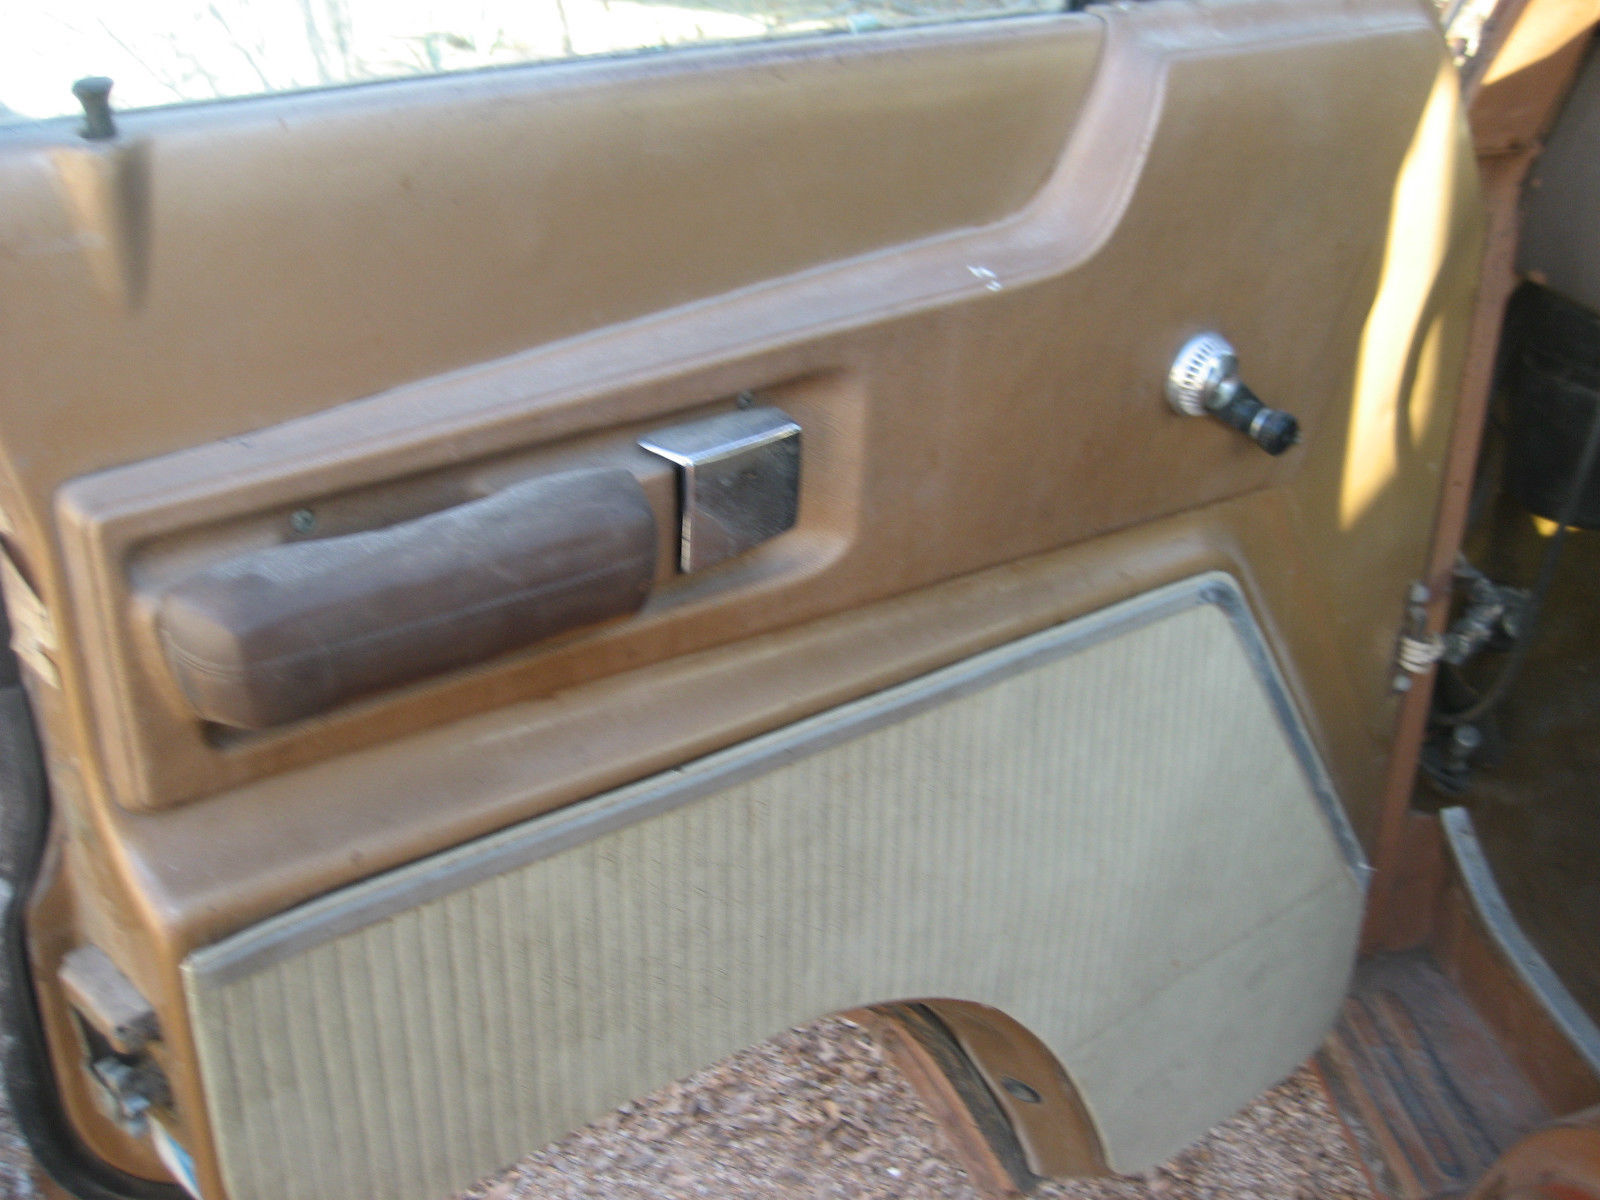 Rare Dodge A100 25 Window Camper Van Rust Free 100 Complete 1969 Technical Specifications Of Other